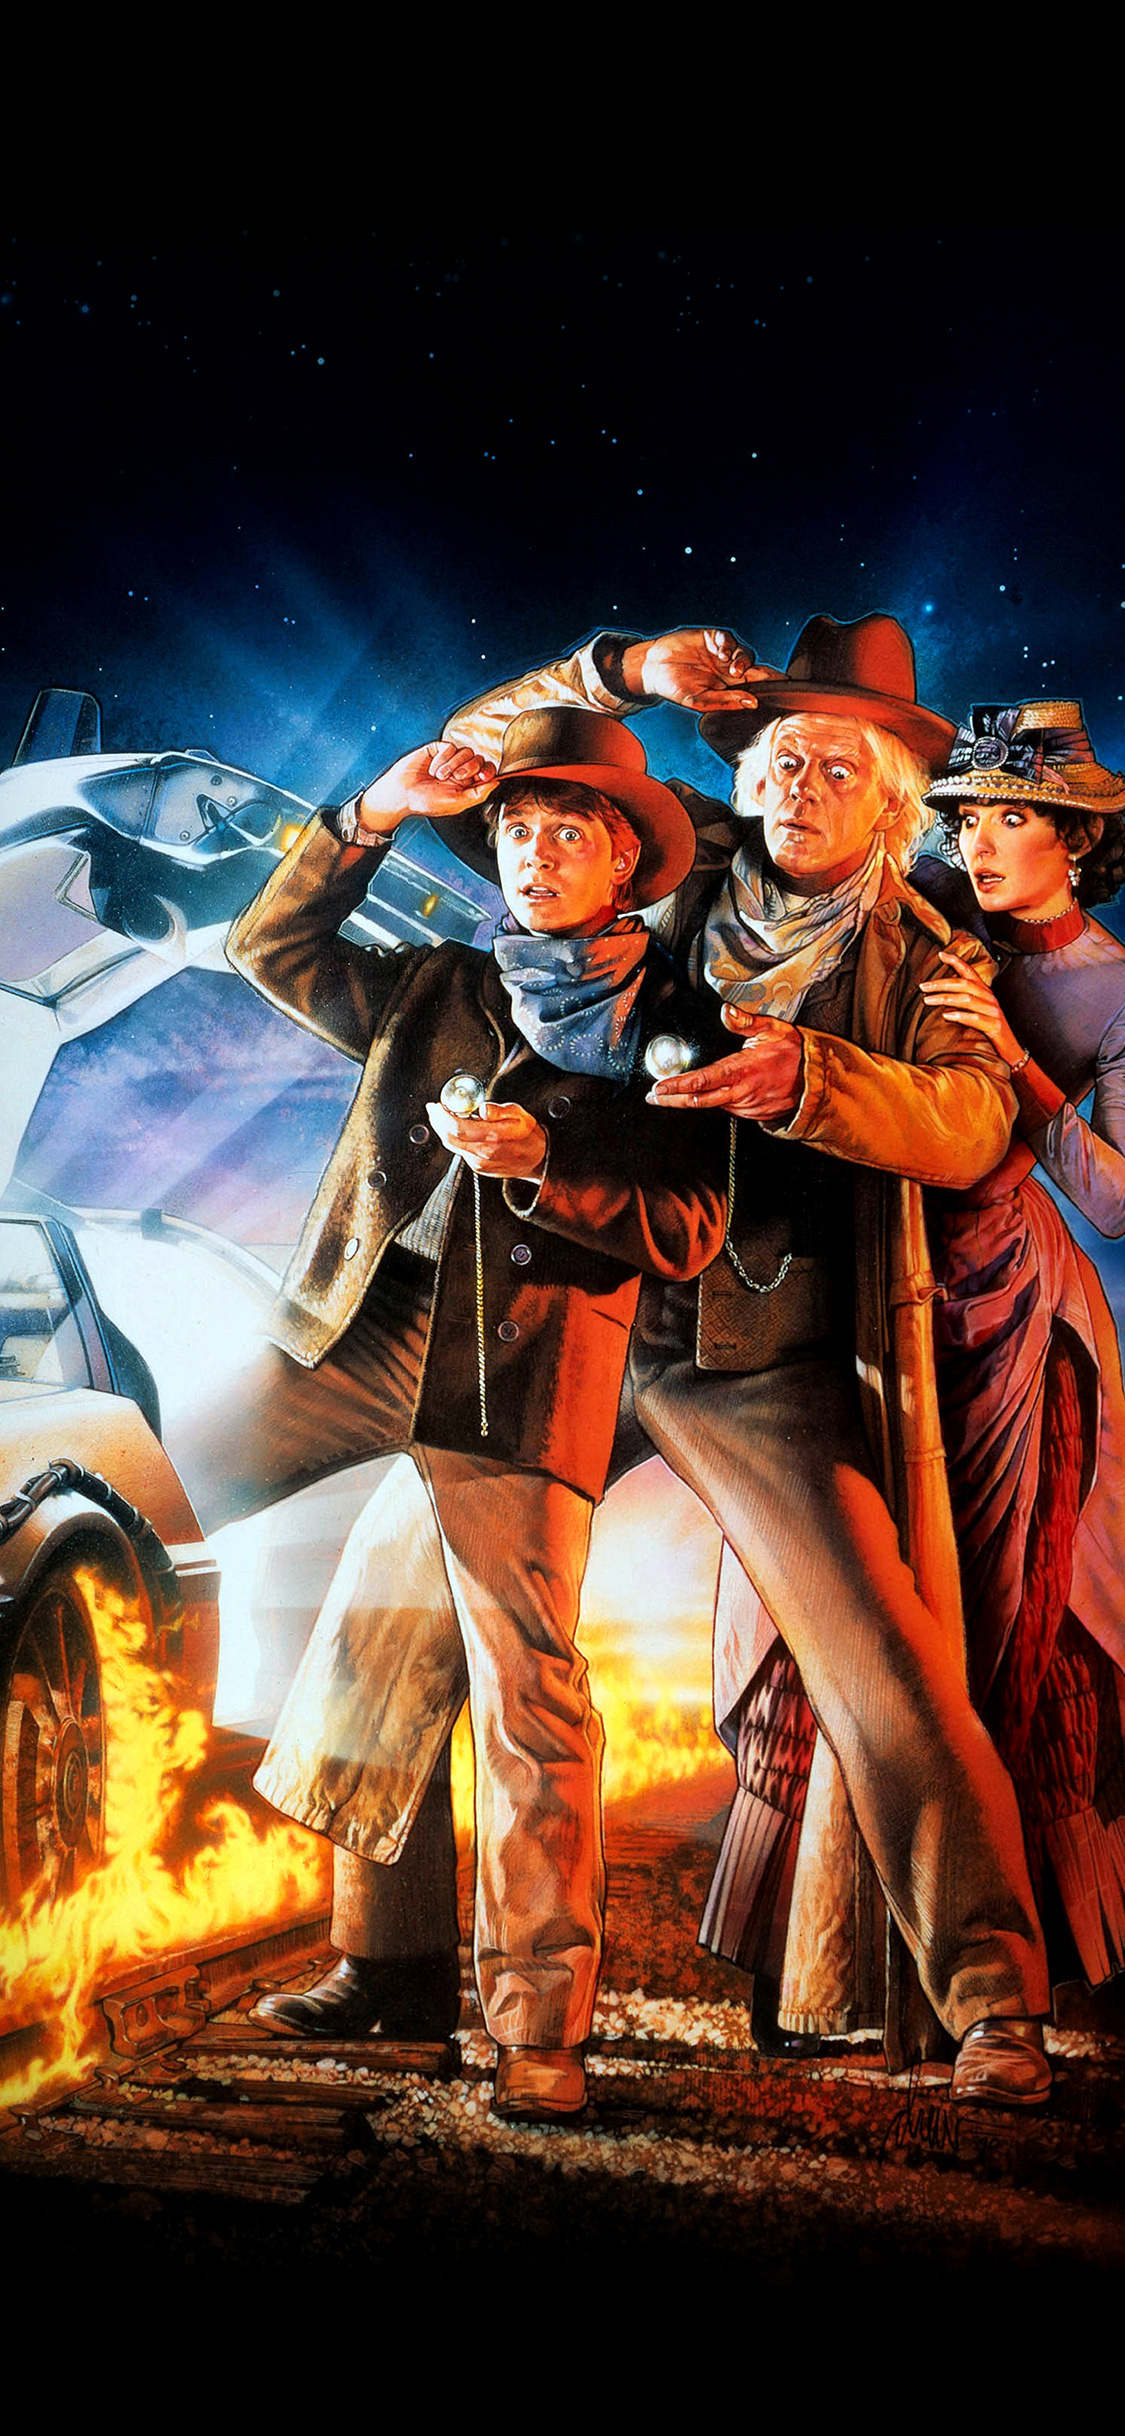 Iphonexpapers Ao02 Back To The Future 3 Poster Film Art